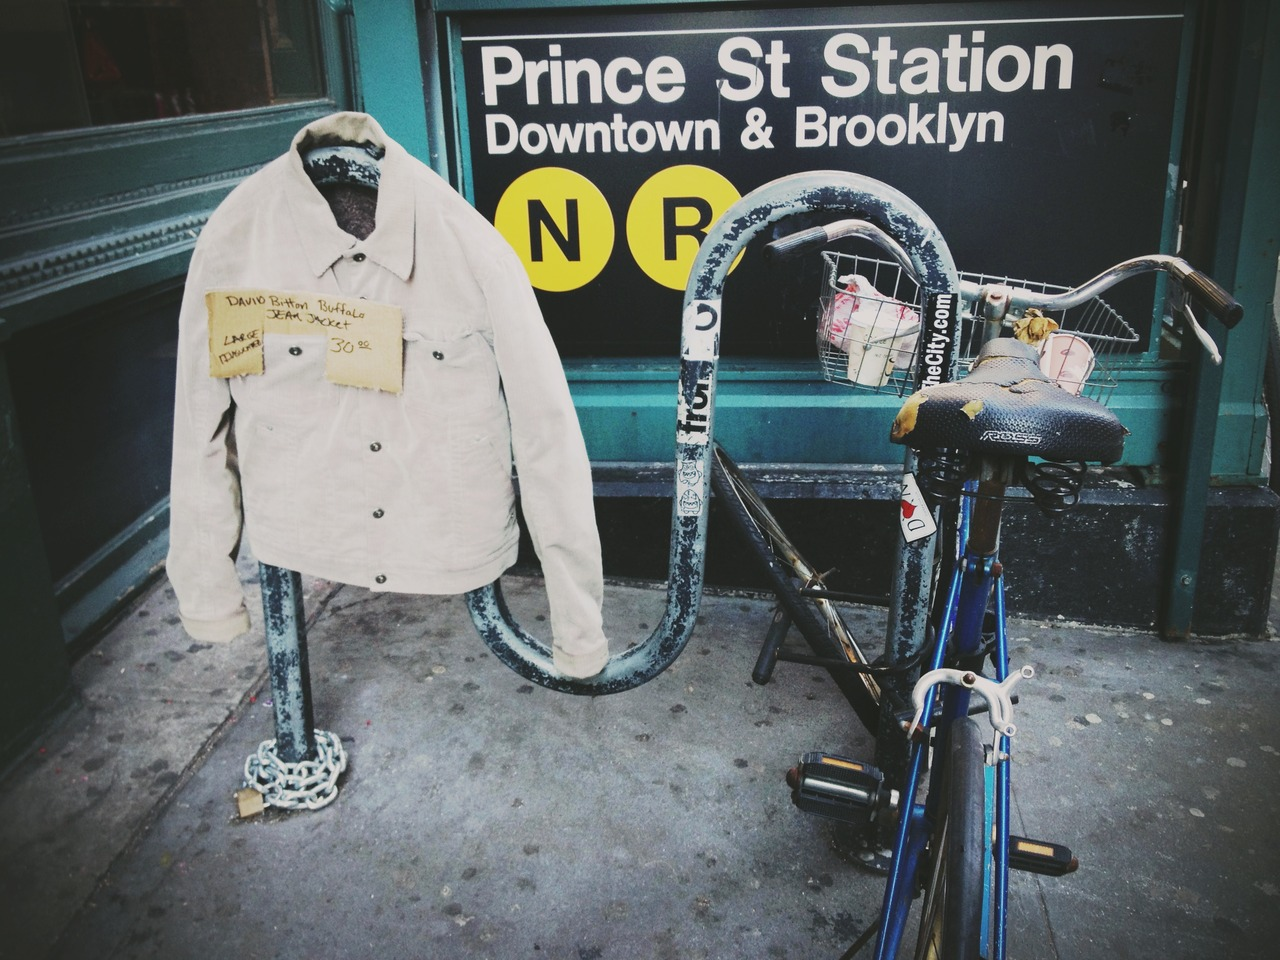 Sell on Prince St. #peppersearching #pepper #photos #subway #denim #bike #sell